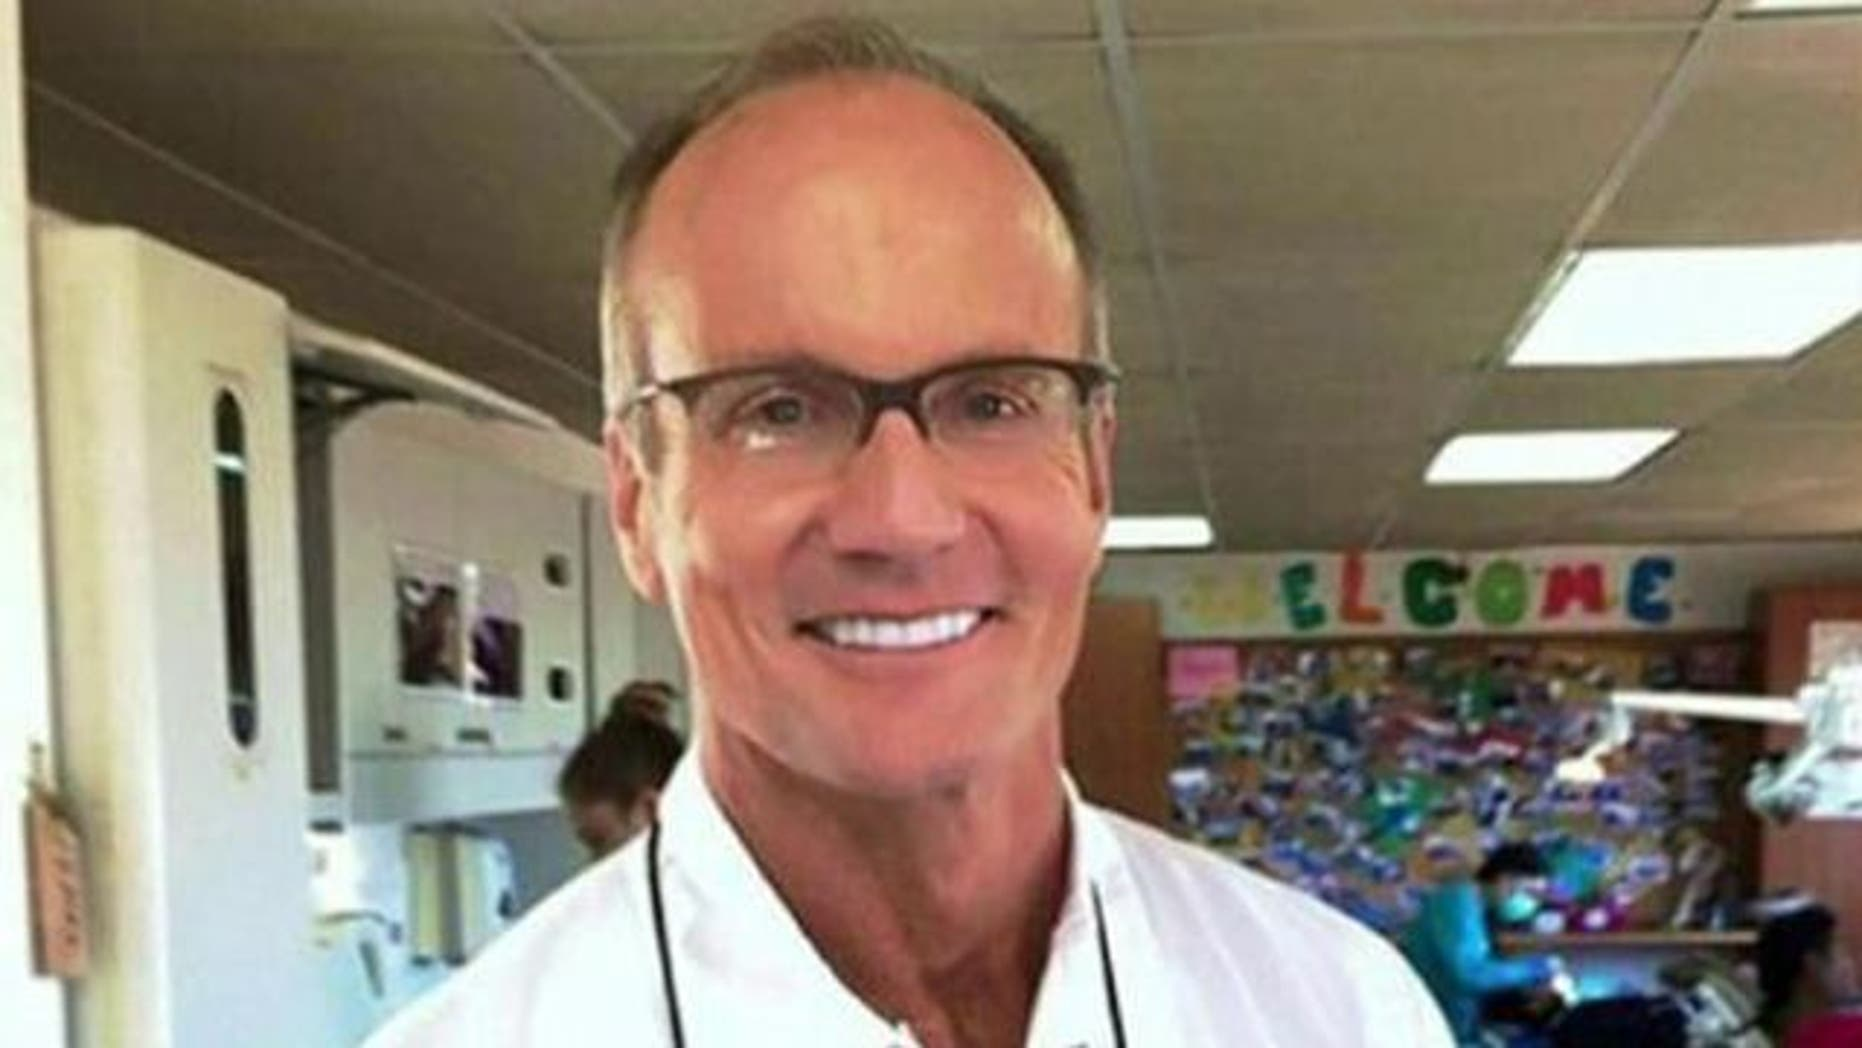 This undated image shows Walter Palmer, a Minnesota dentist who sparked an international furor by killing Cecil the lion in July.